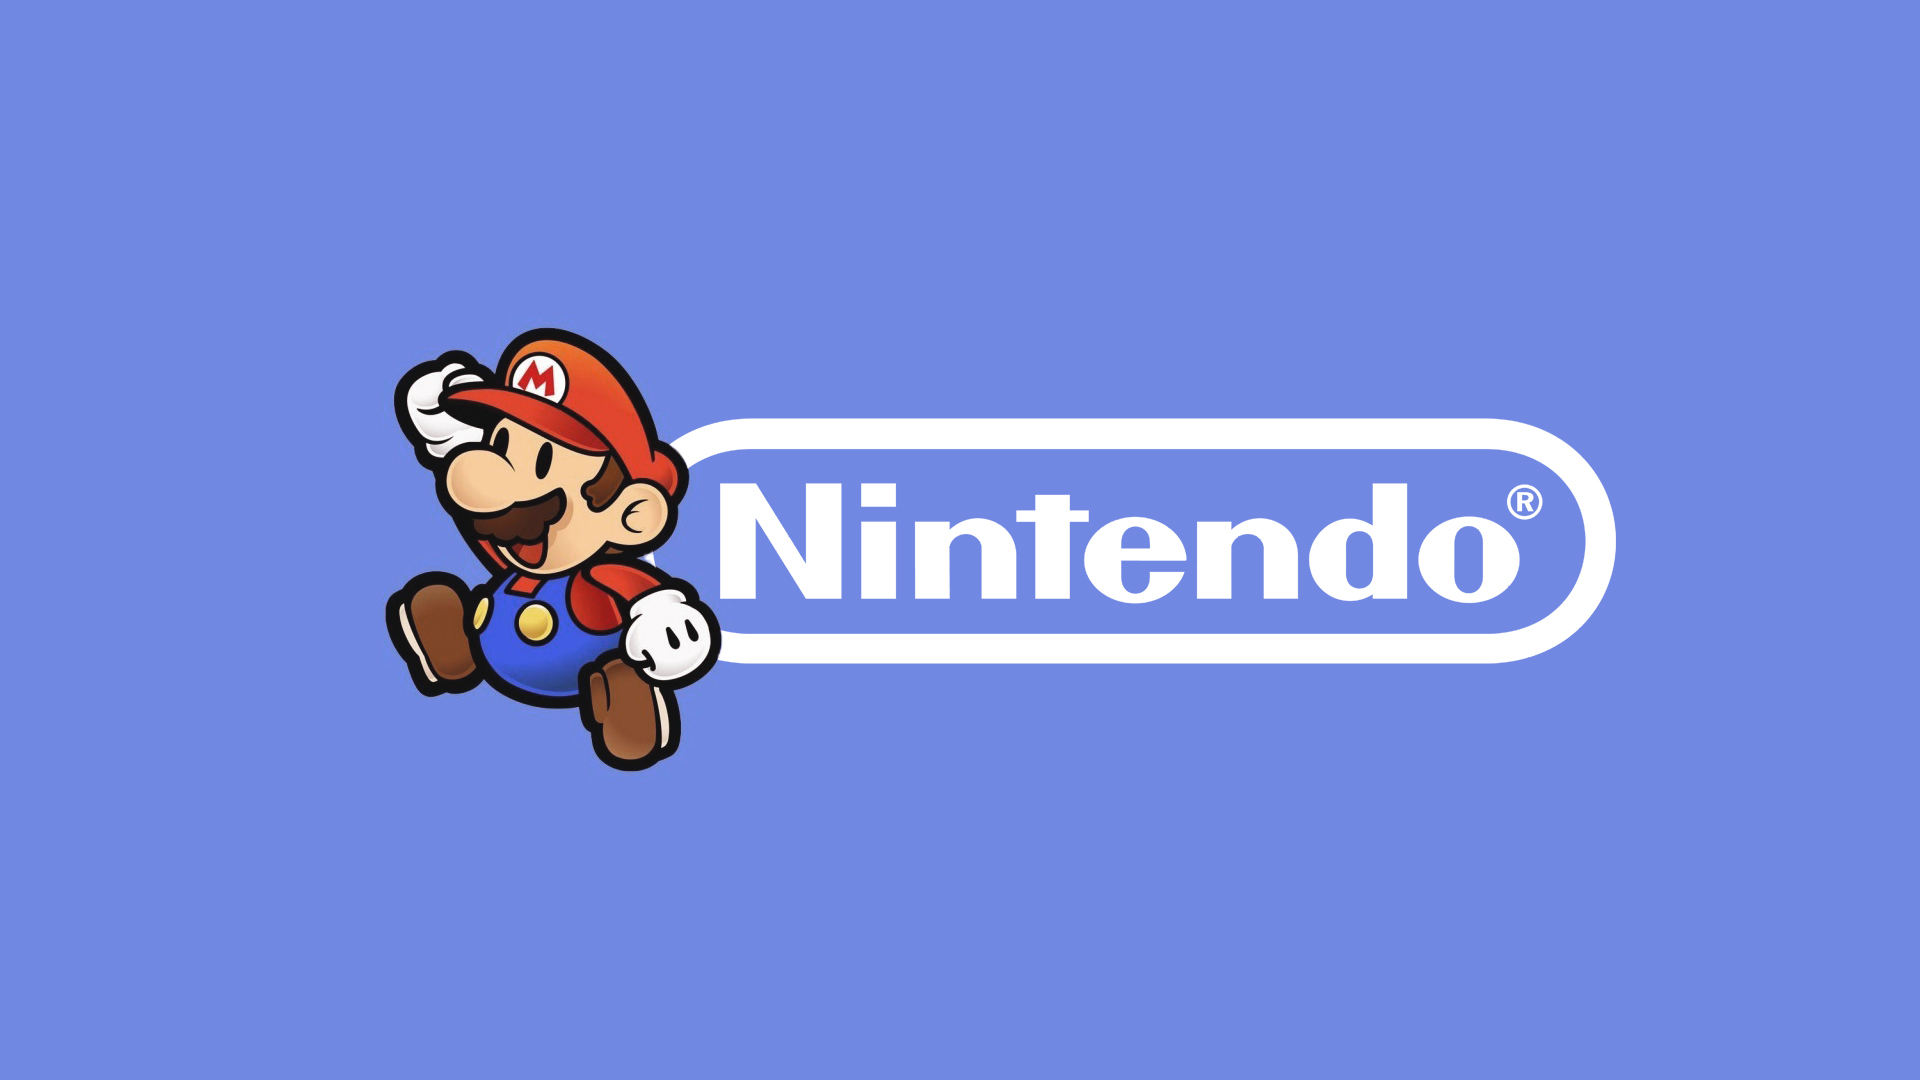 Nintendo dispara novamente com Mario no iPhone